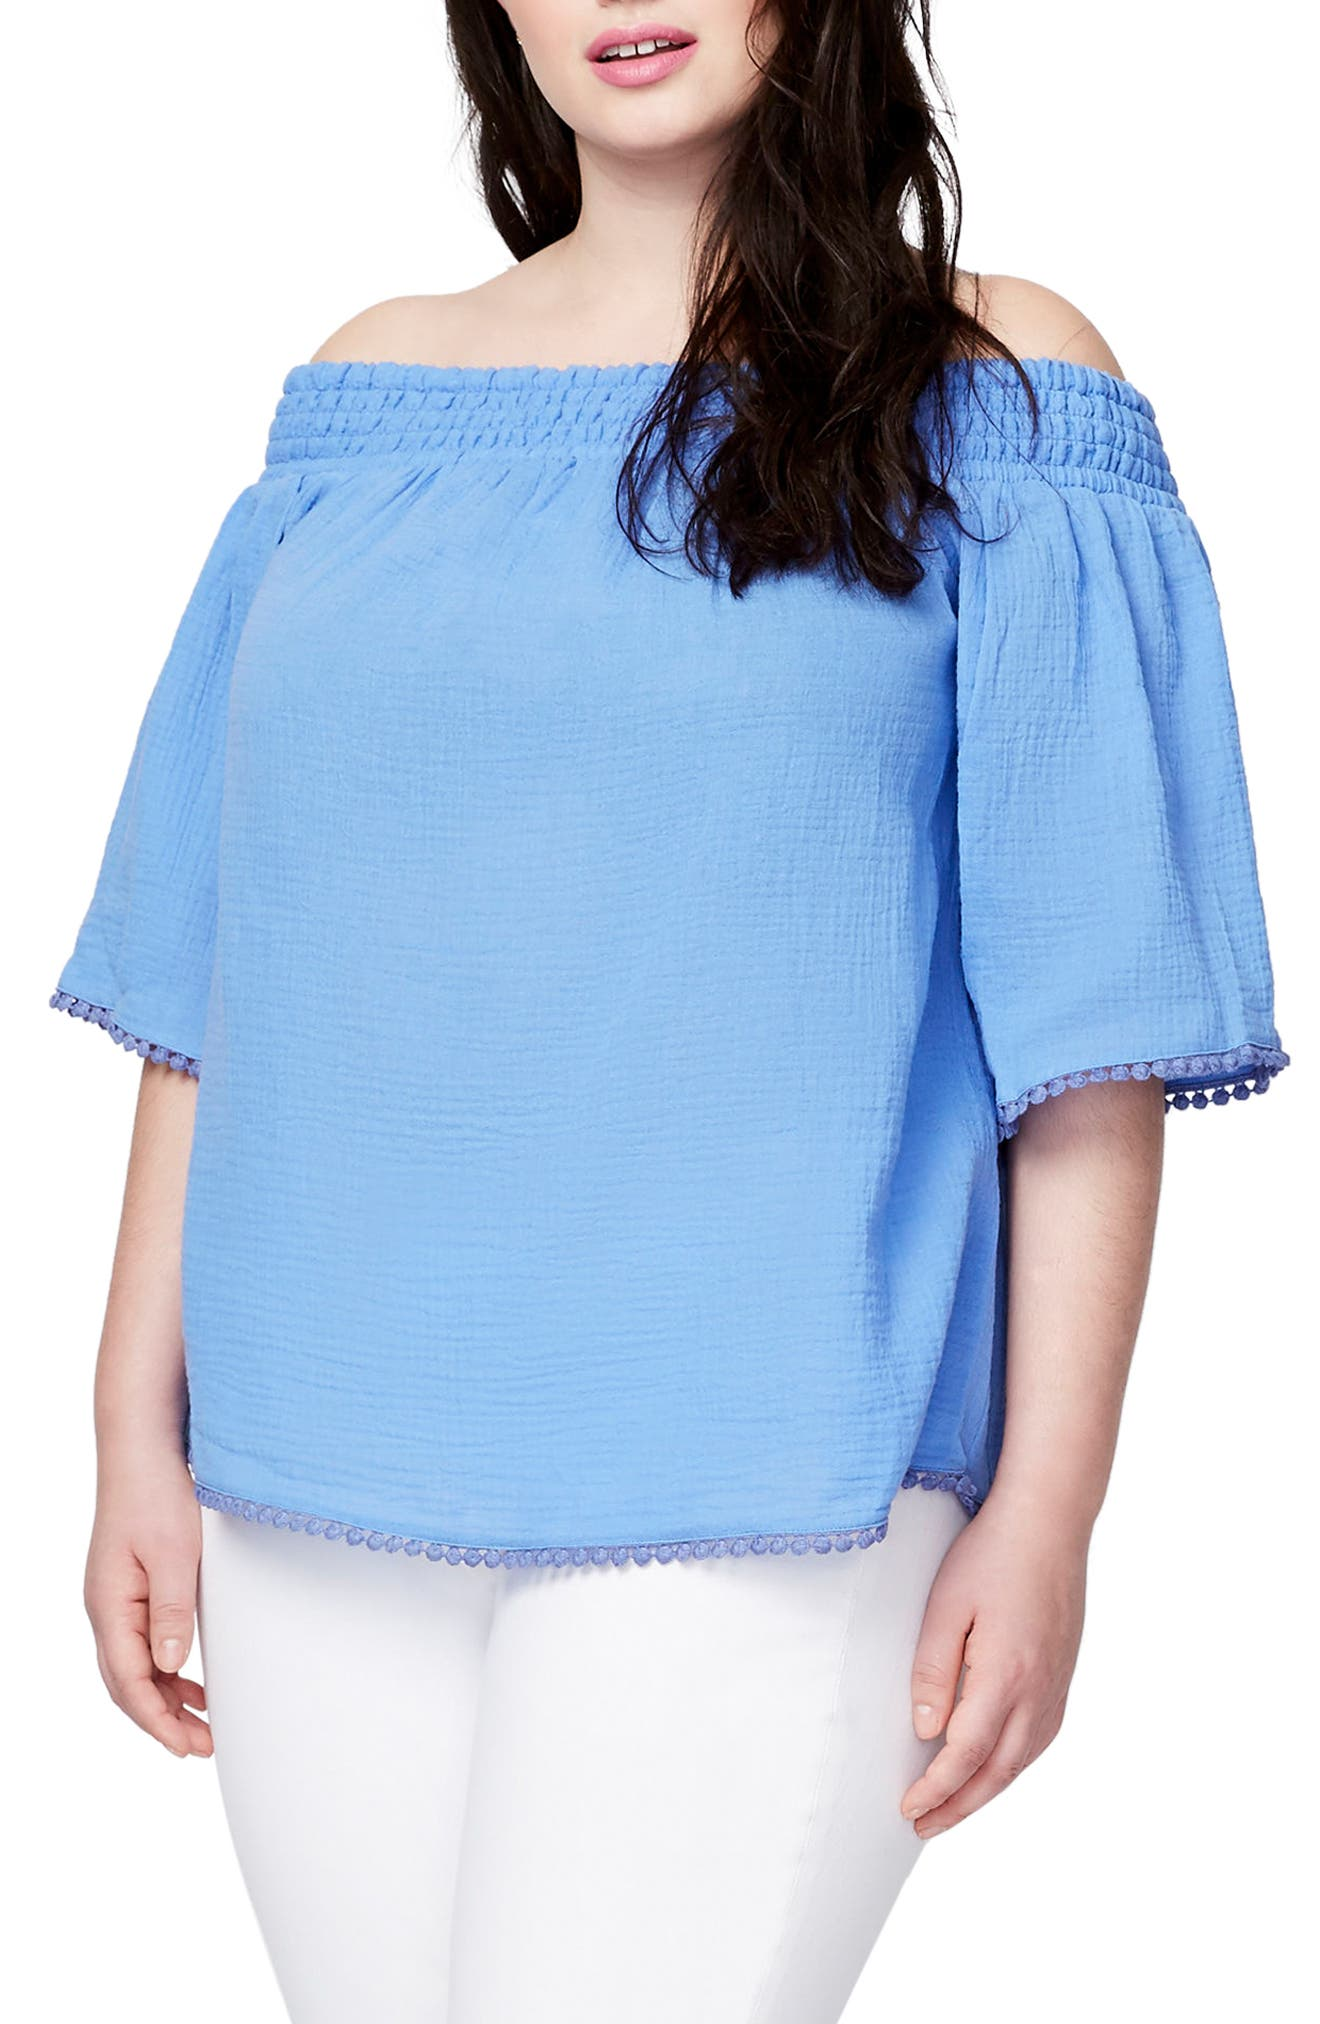 Alternate Image 1 Selected - RACHEL Rachel Roy Smocked Off the Shoulder Top (Plus Size)